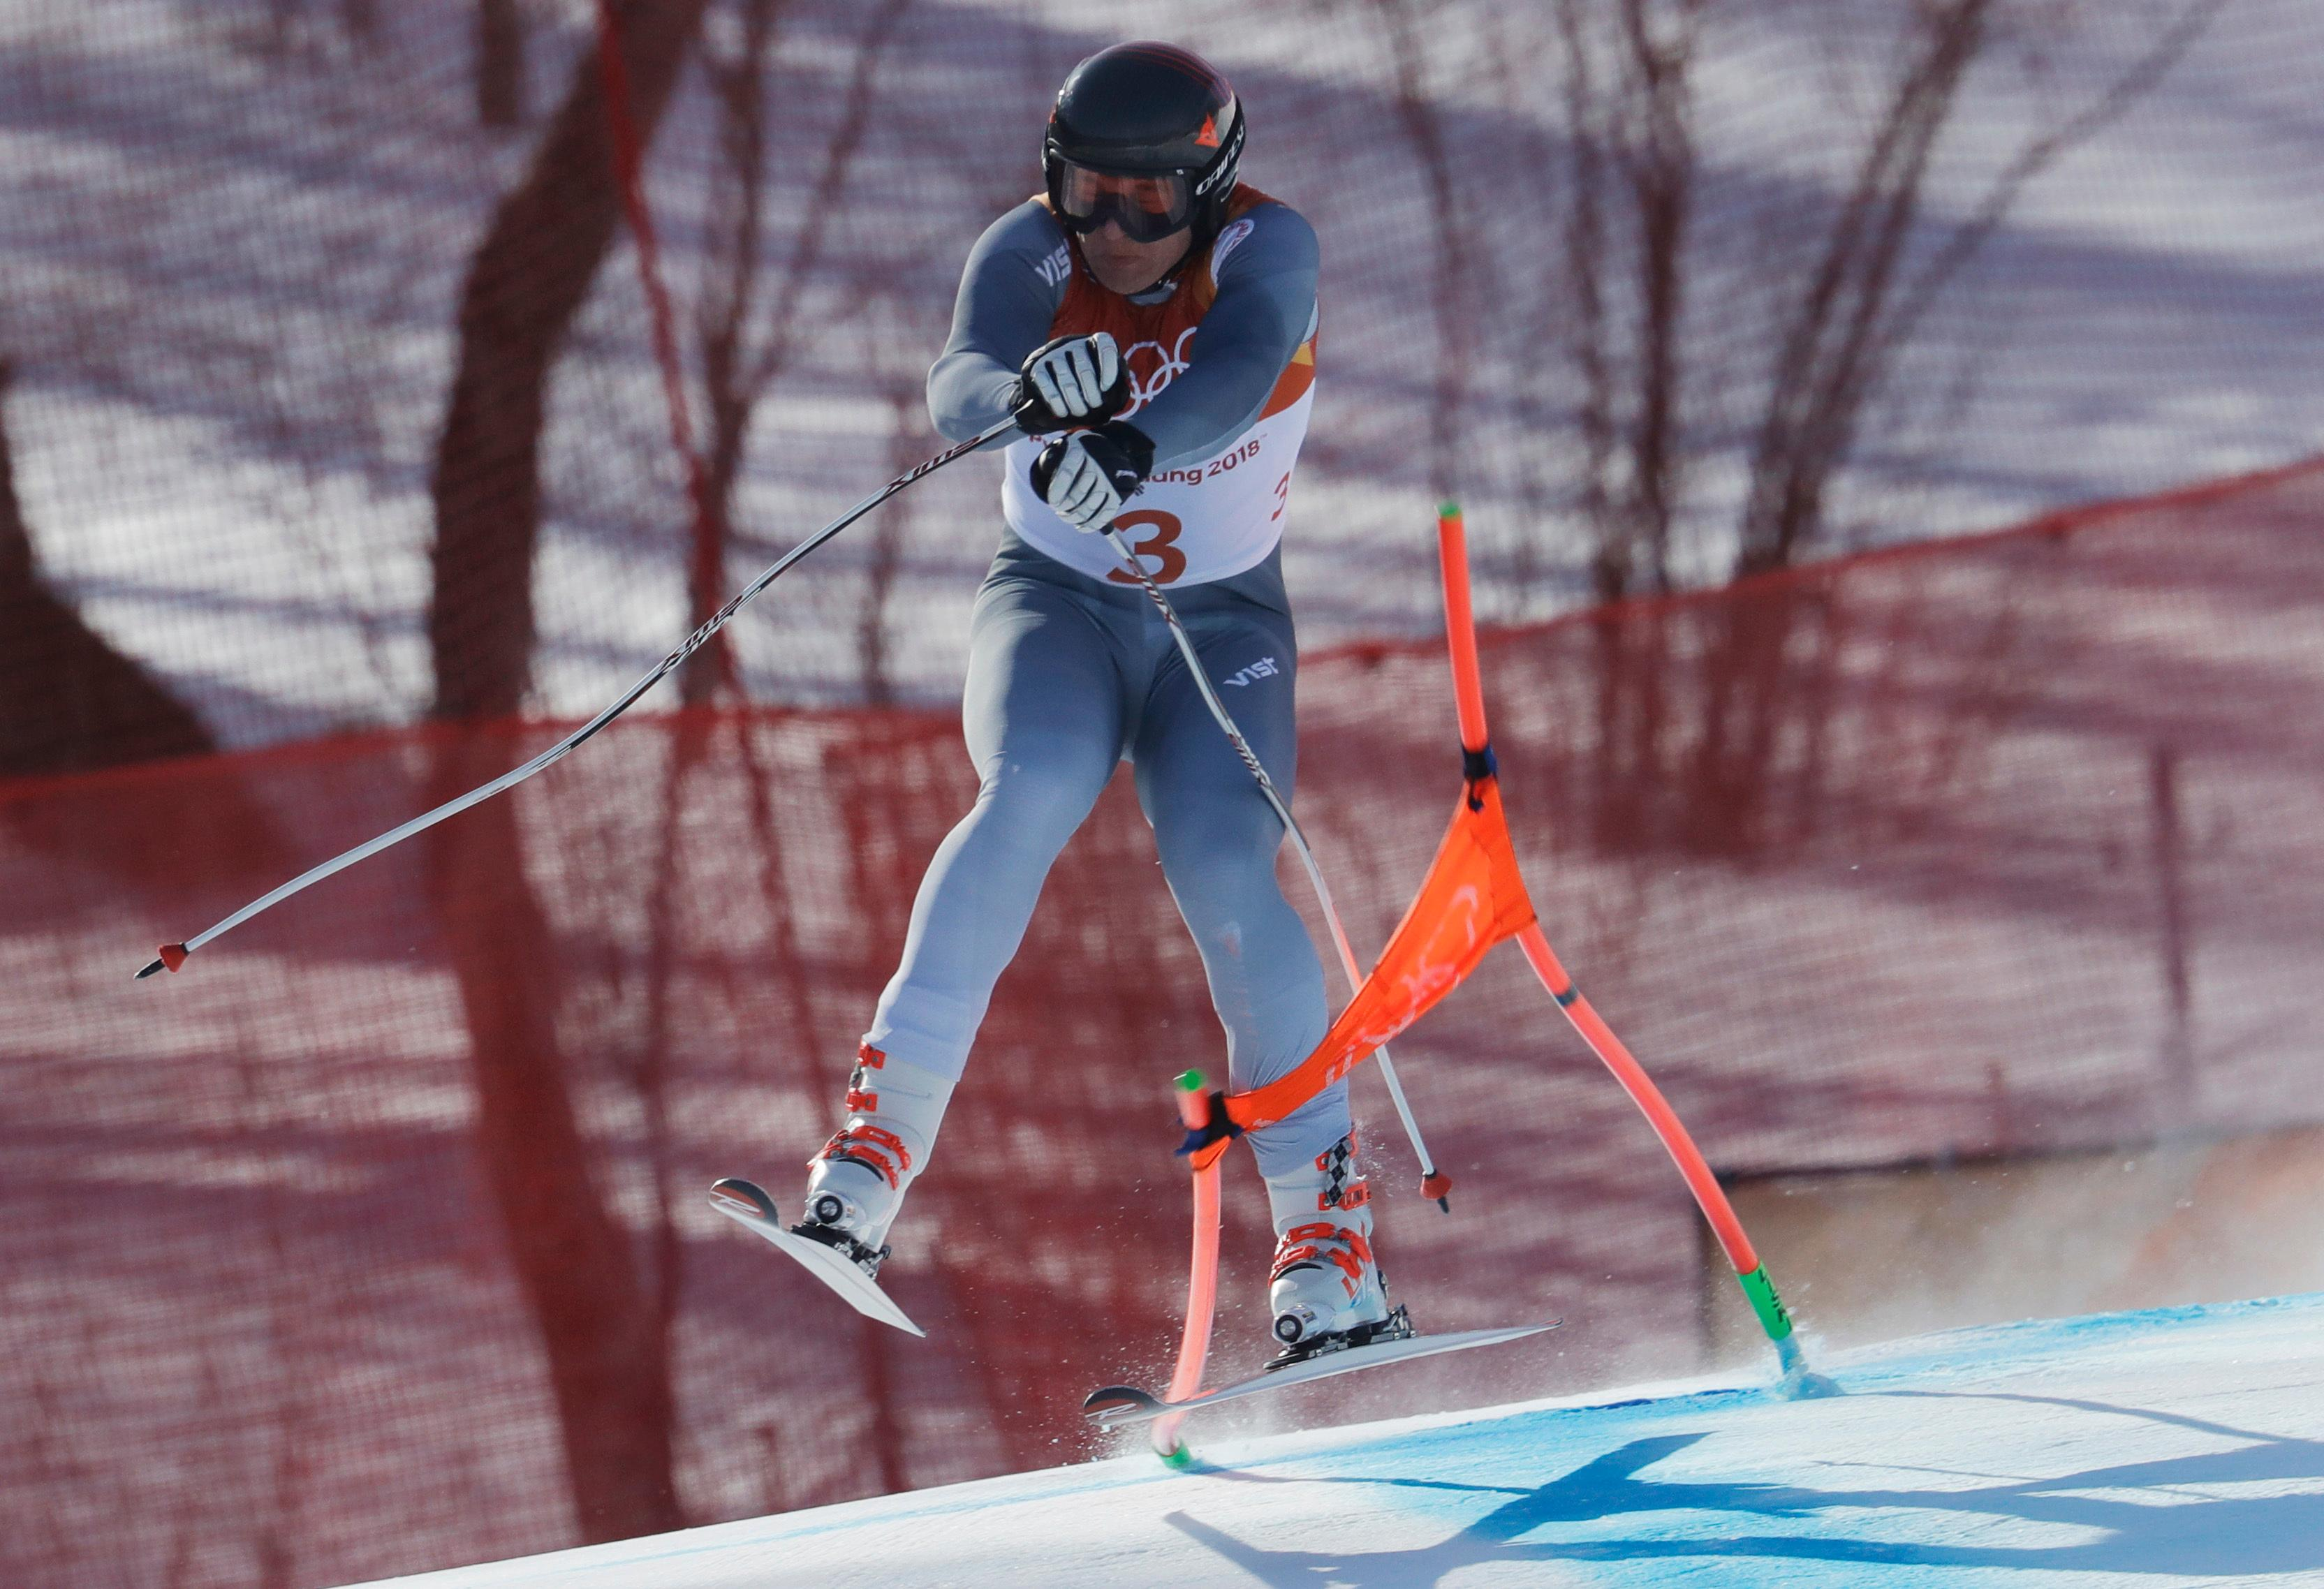 Russia's Pavel Trikhichev crashes during the downhill portion of the men's combined at the 2018 Winter Olympics in Jeongseon, South Korea, Tuesday, Feb. 13, 2018. (AP Photo/Michael Probst)